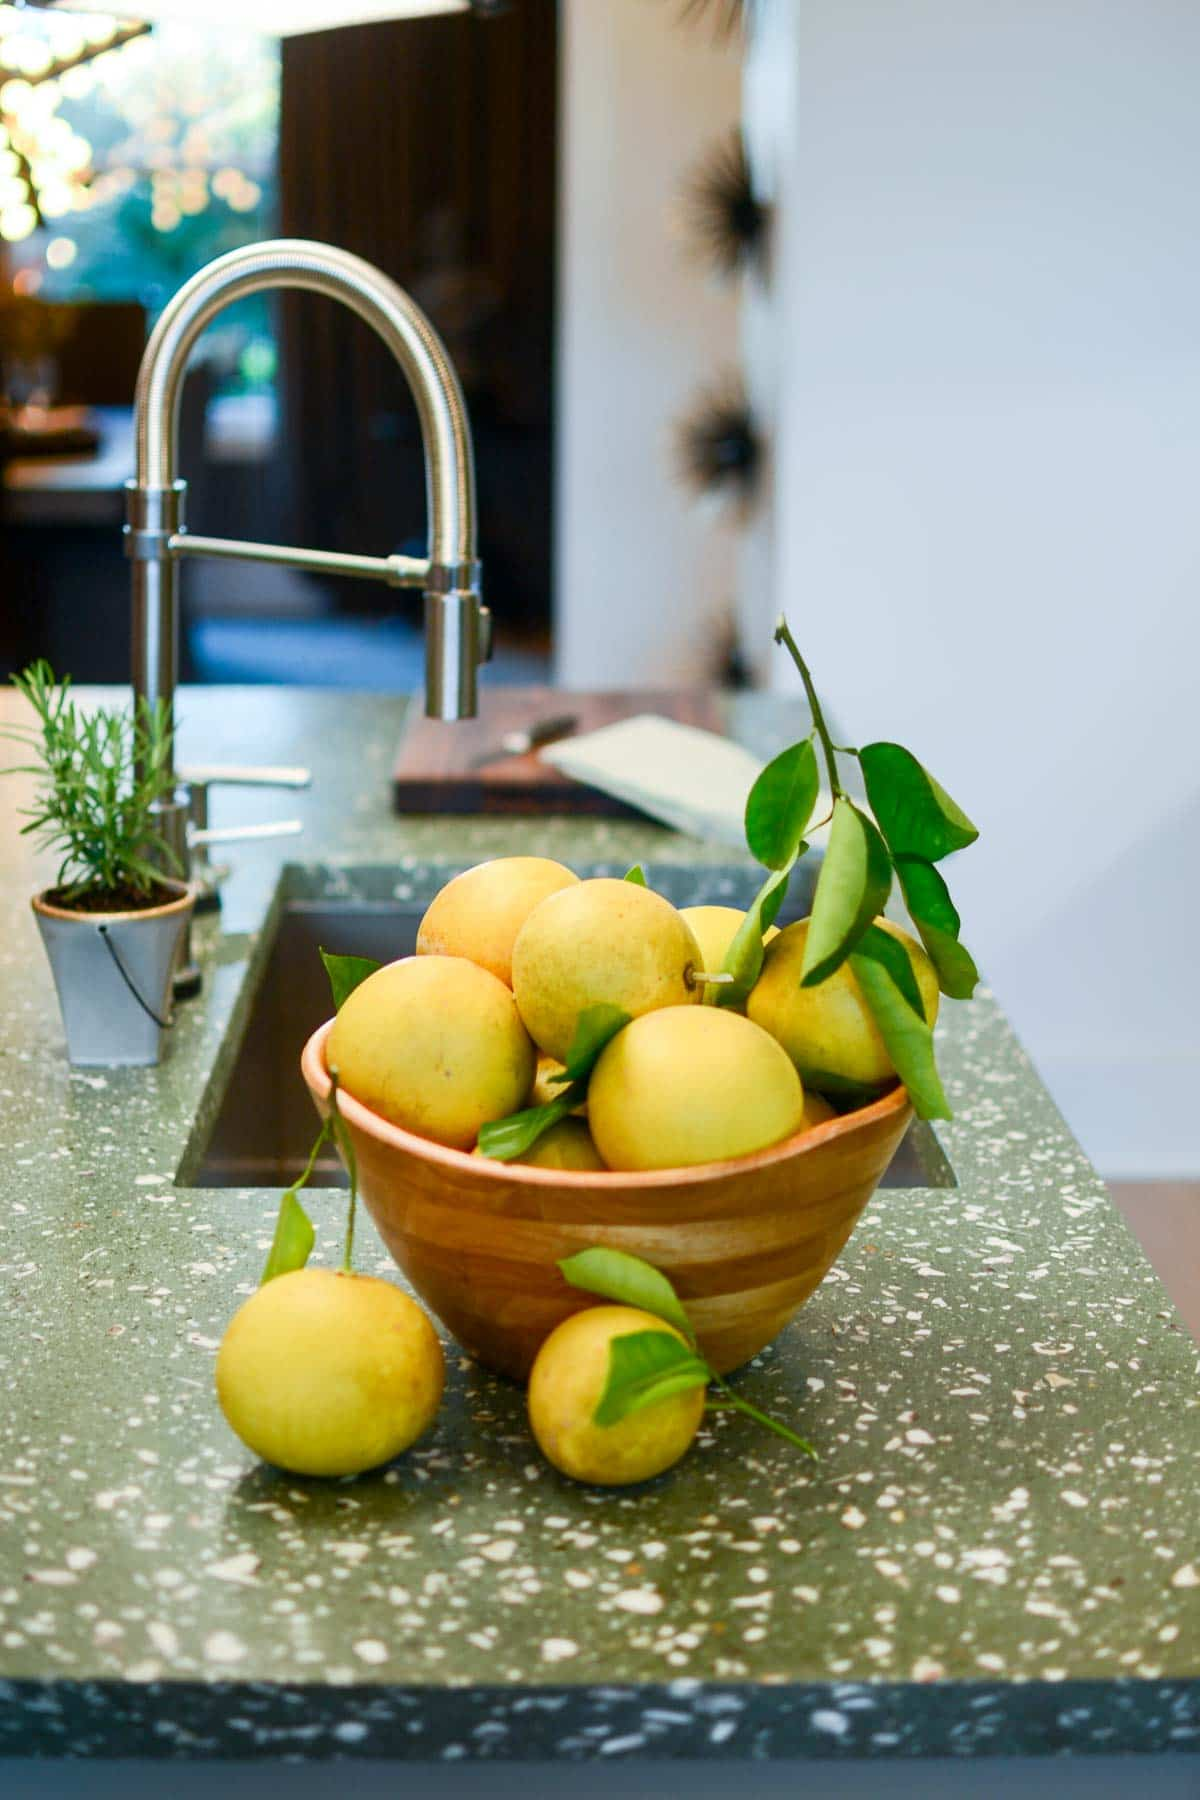 Lemon Decorations For Kitchen 7 Decorating Tips For A Green Kitchen Crazy For Crust